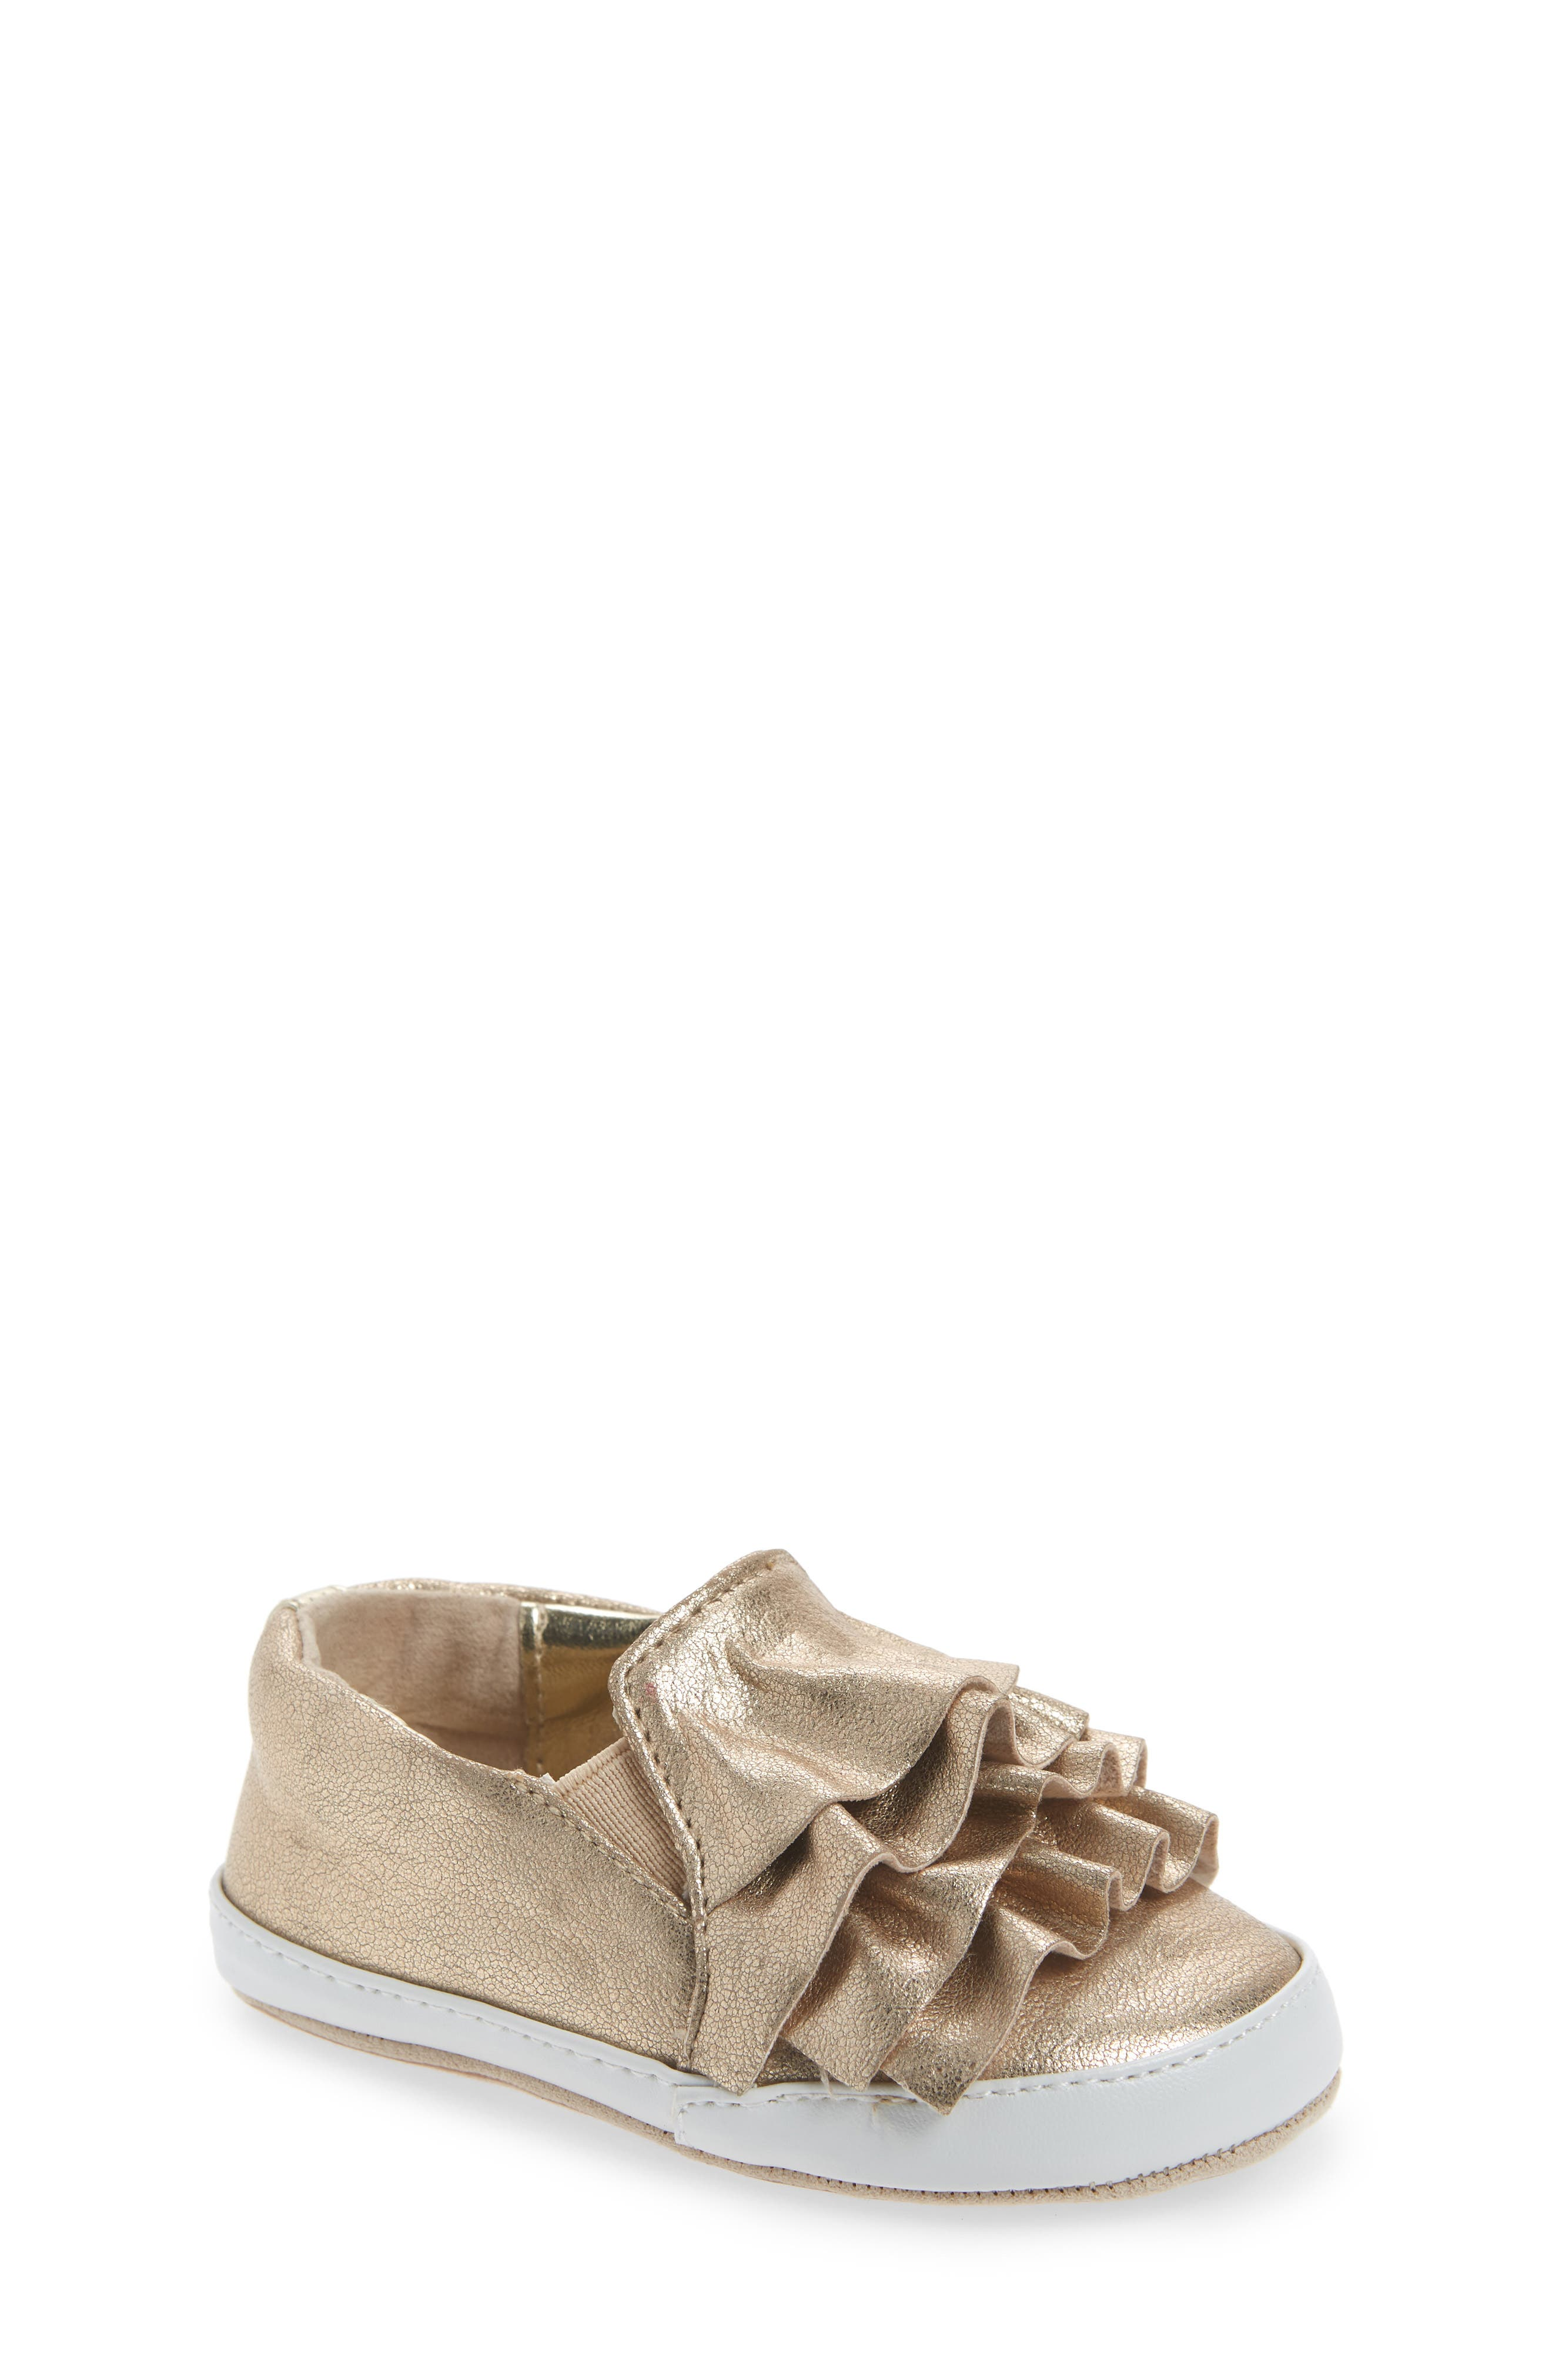 Ruffle Metallic Kam Slip-On Sneaker,                         Main,                         color, Gold